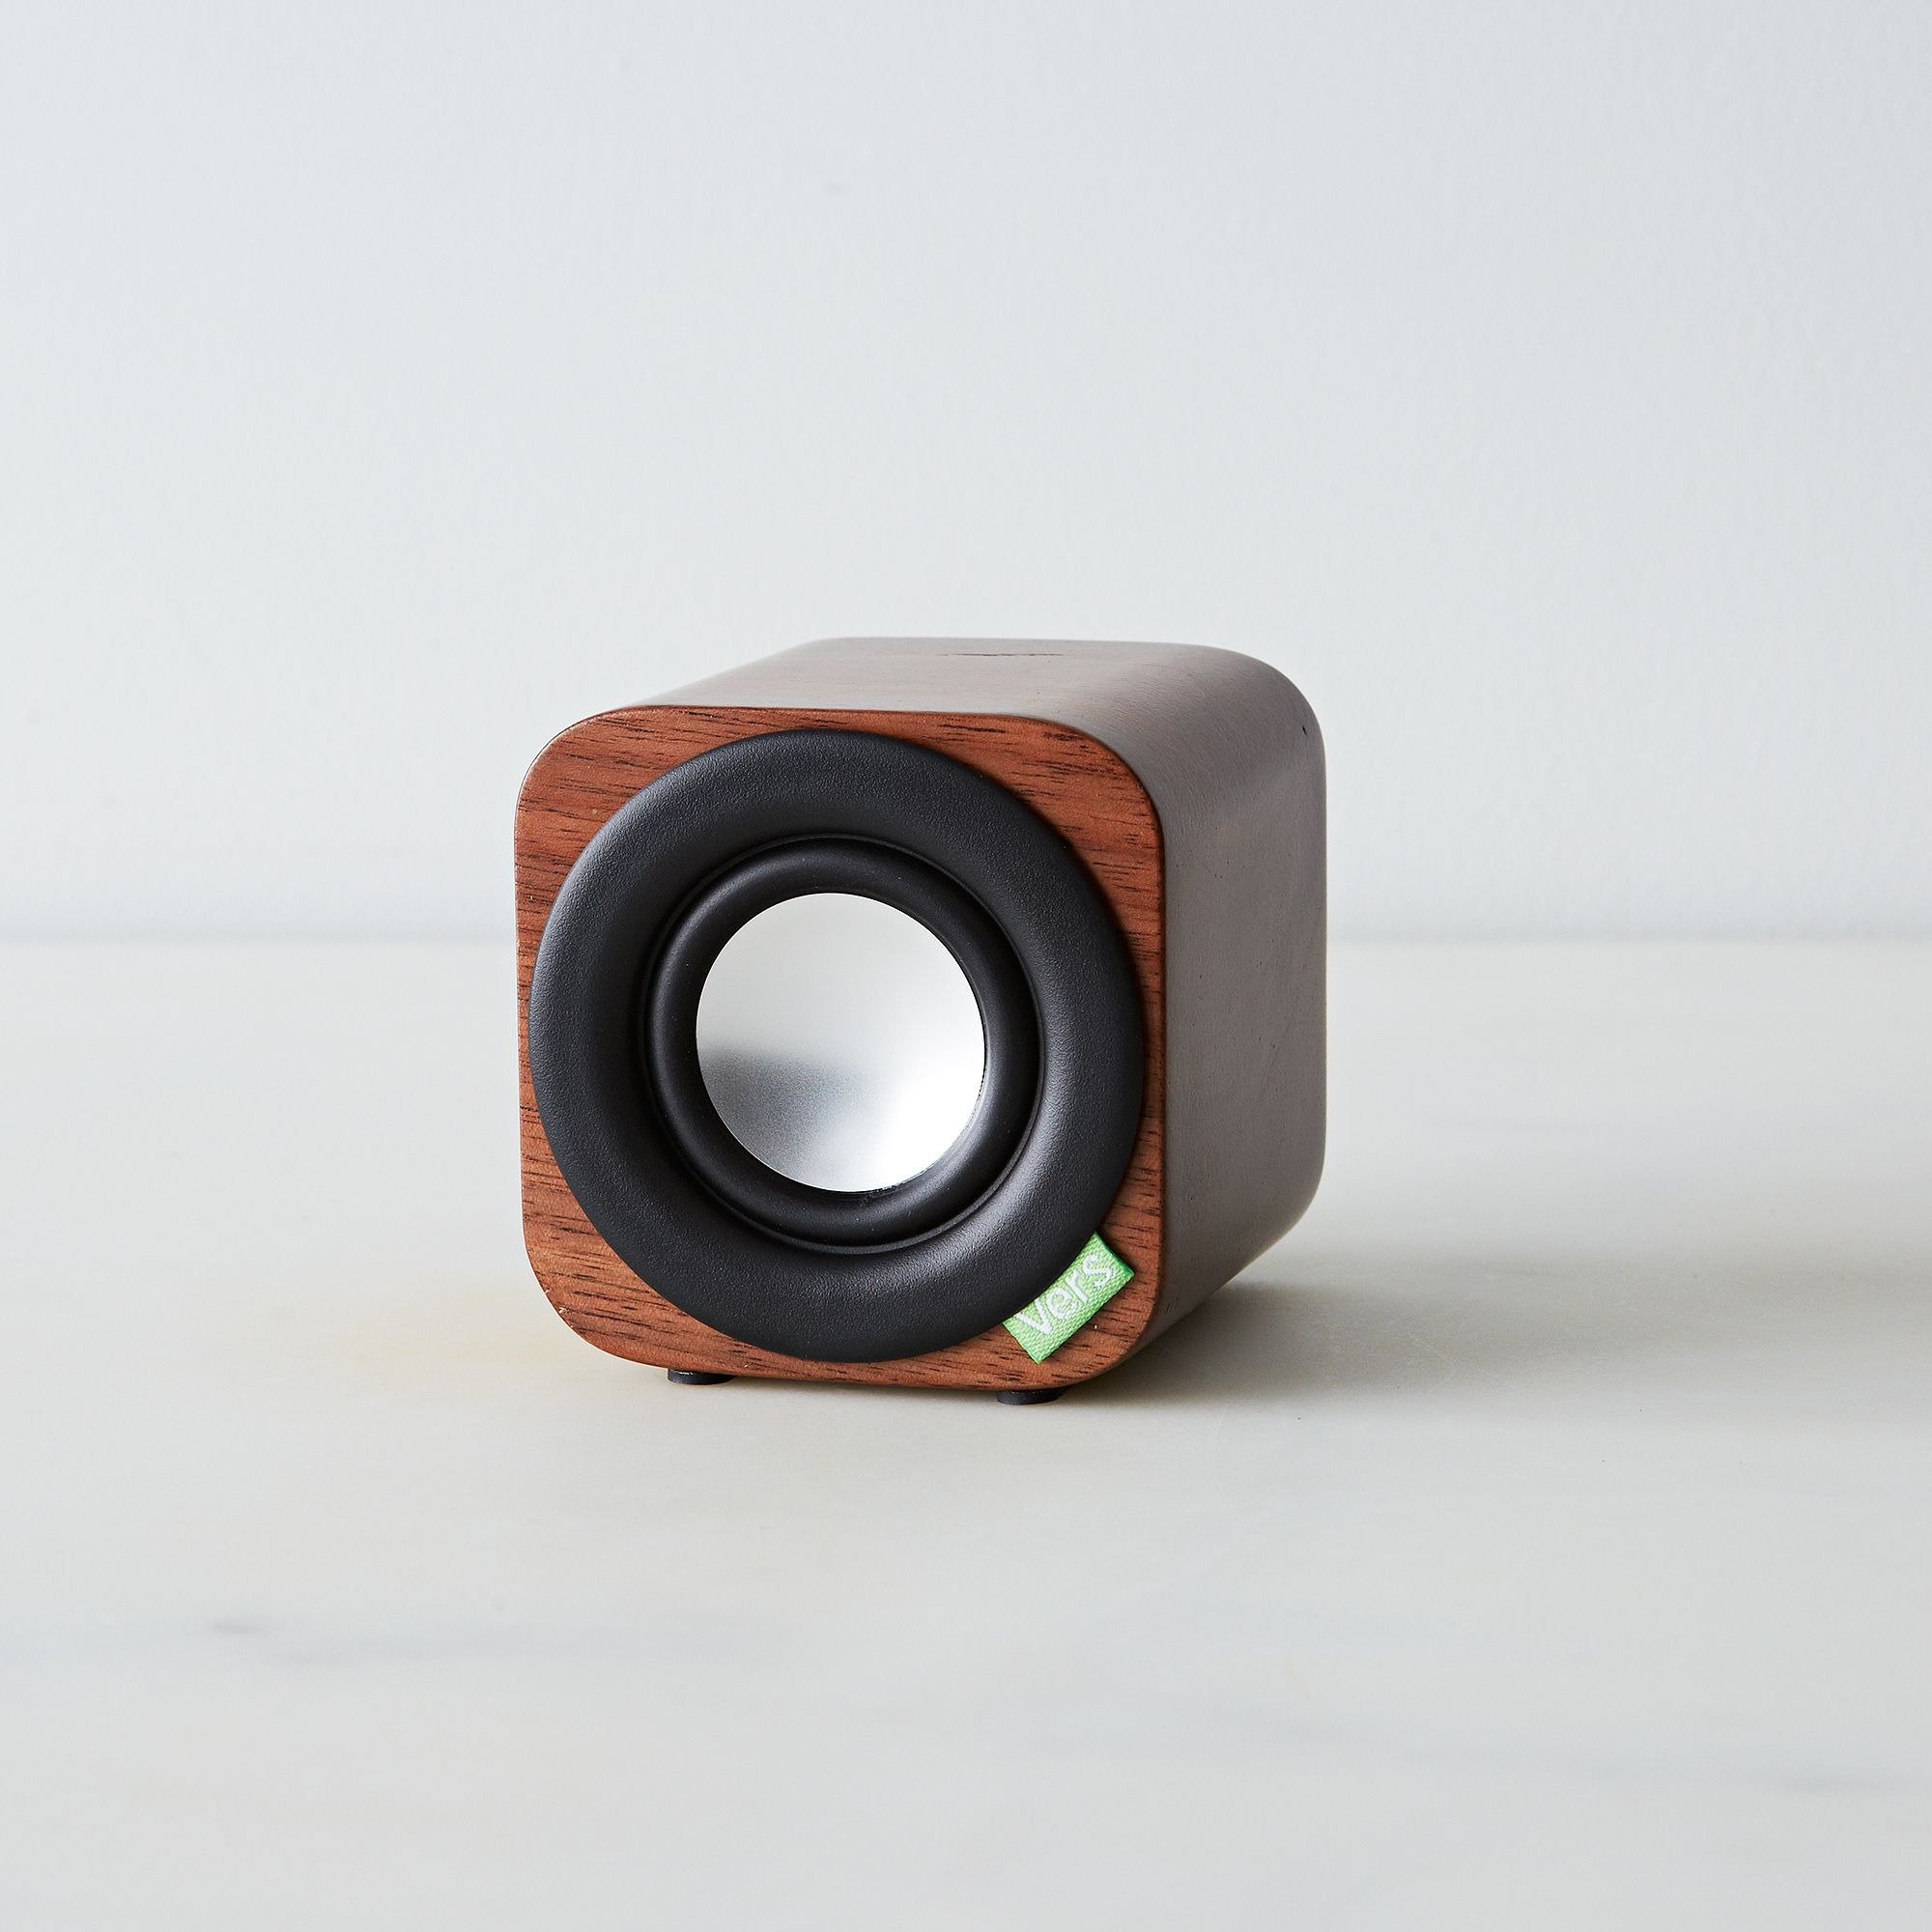 Dfc913a0 a0f7 11e5 a190 0ef7535729df  2015 0211 vers audio bluetooth wooden portable speakers q1 walnut alpha smoot 256